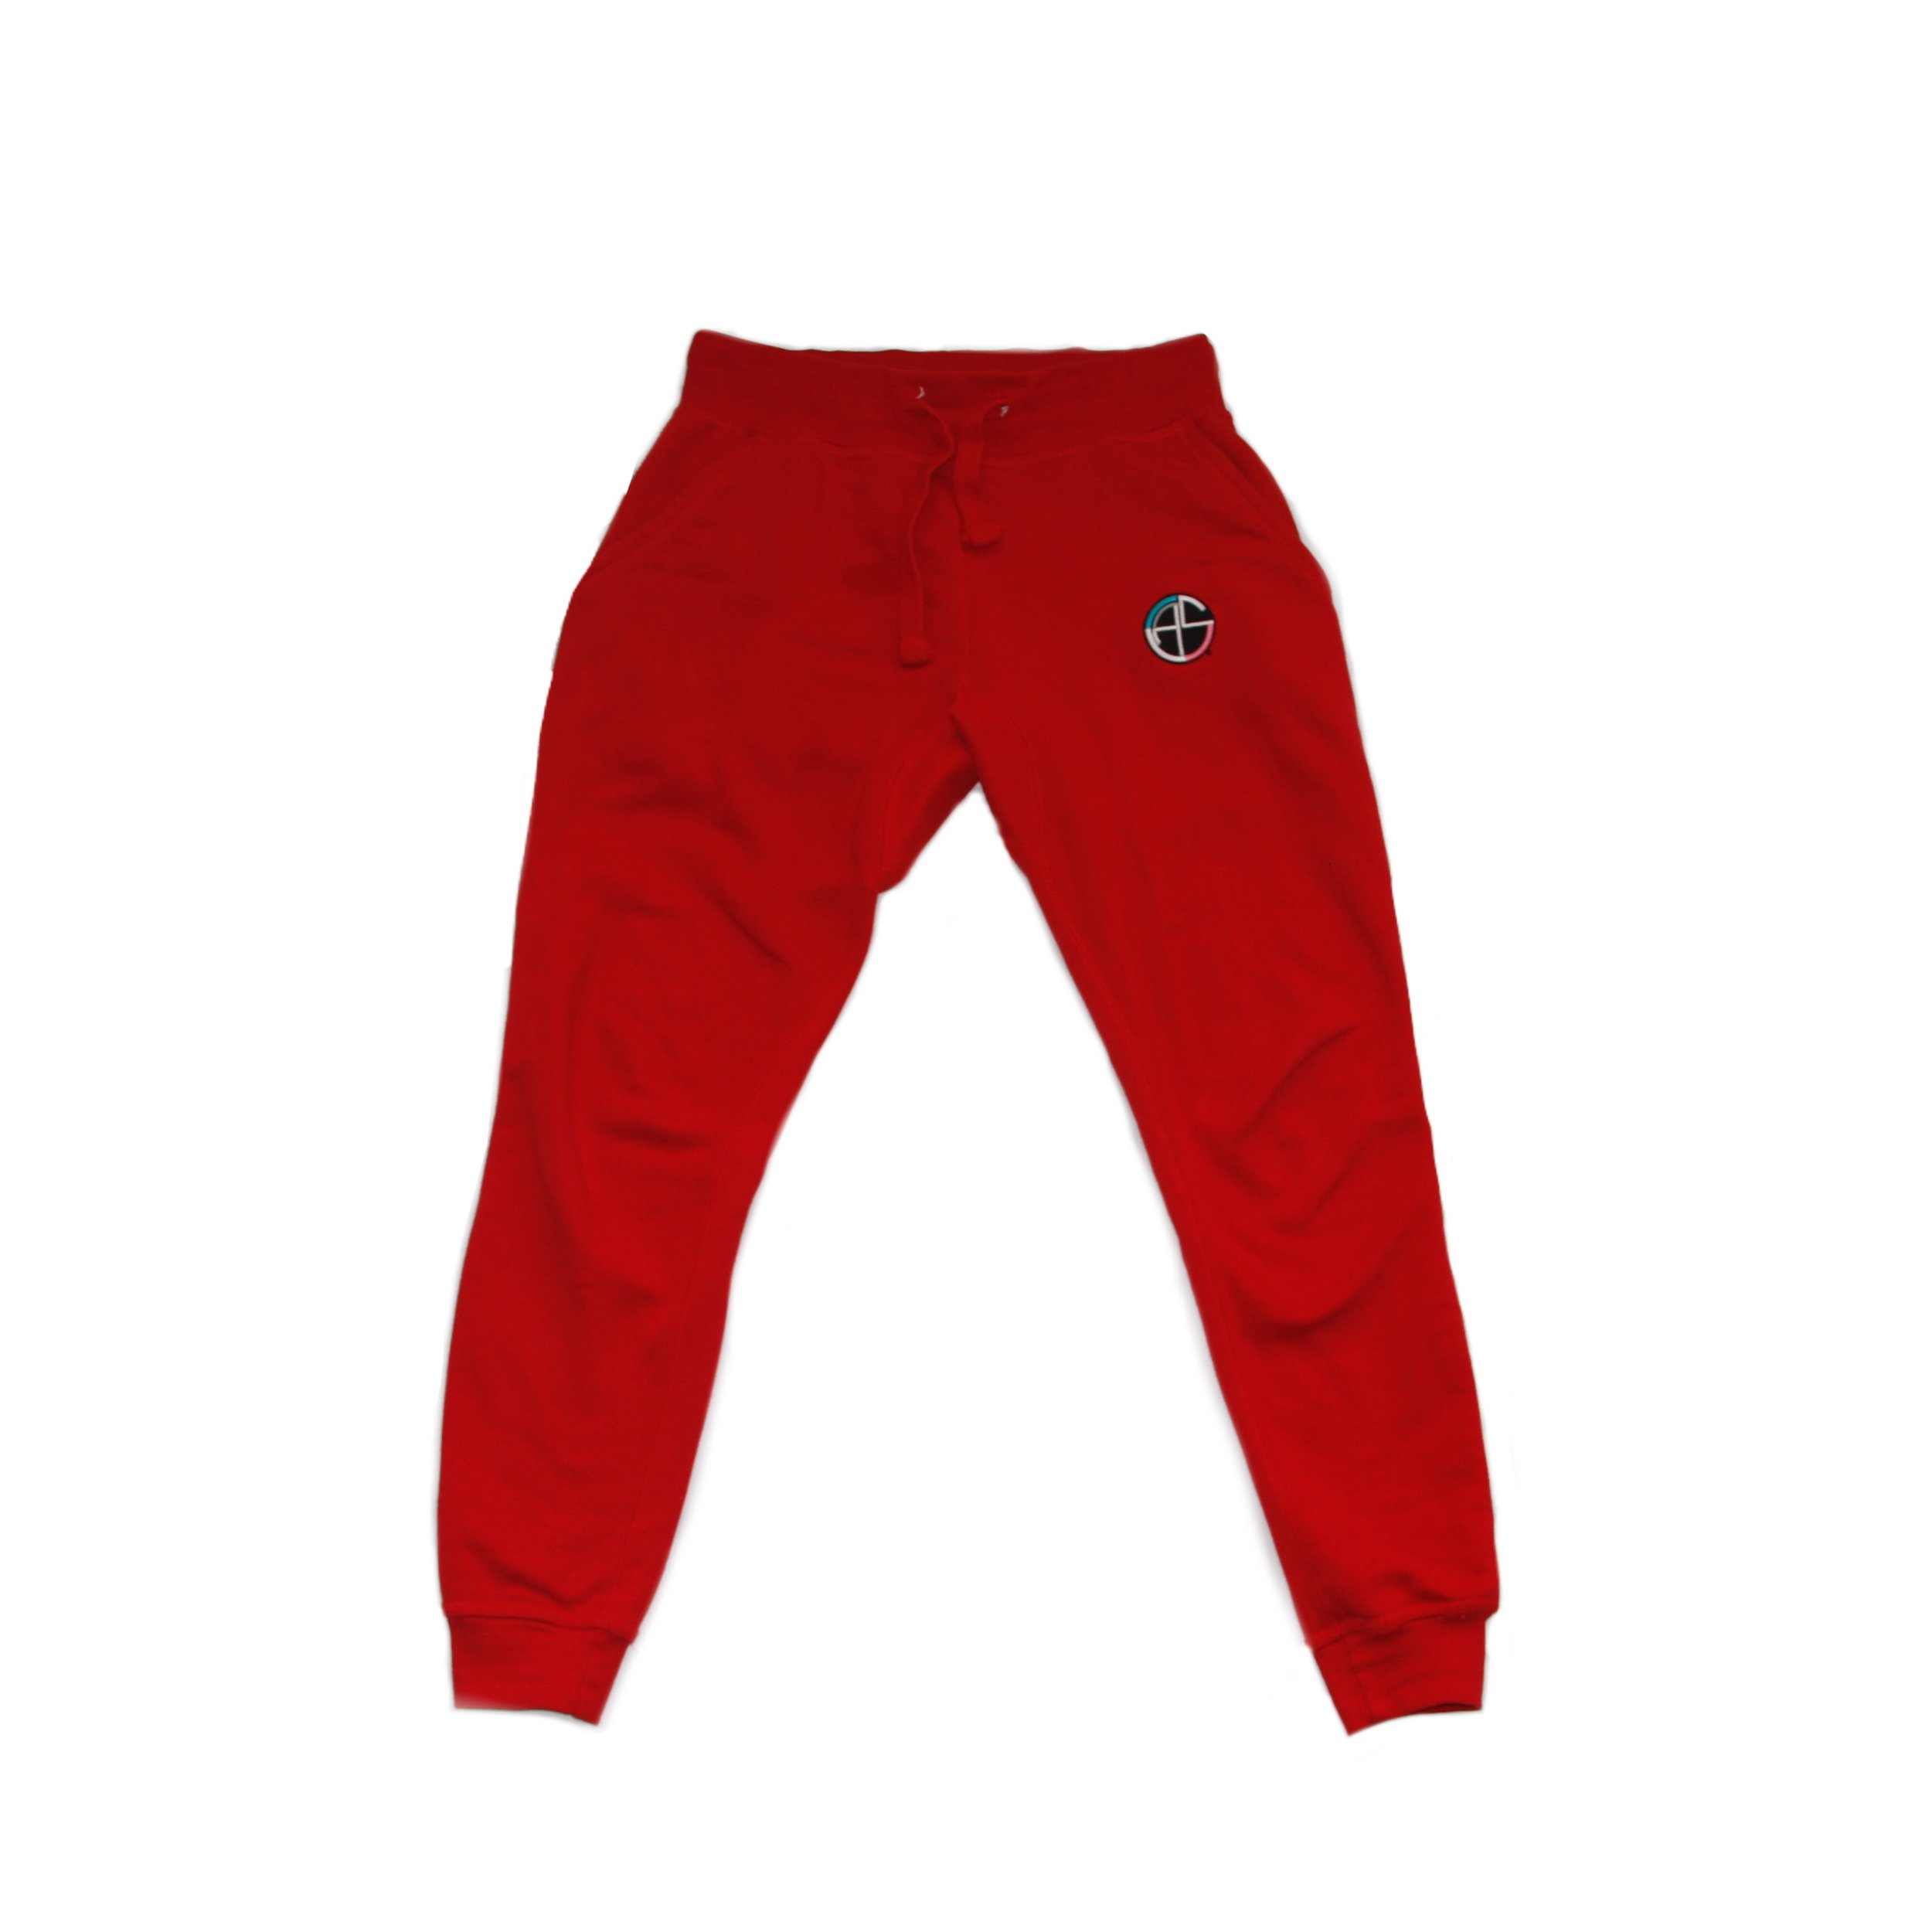 C.A.S. Red Joggers -